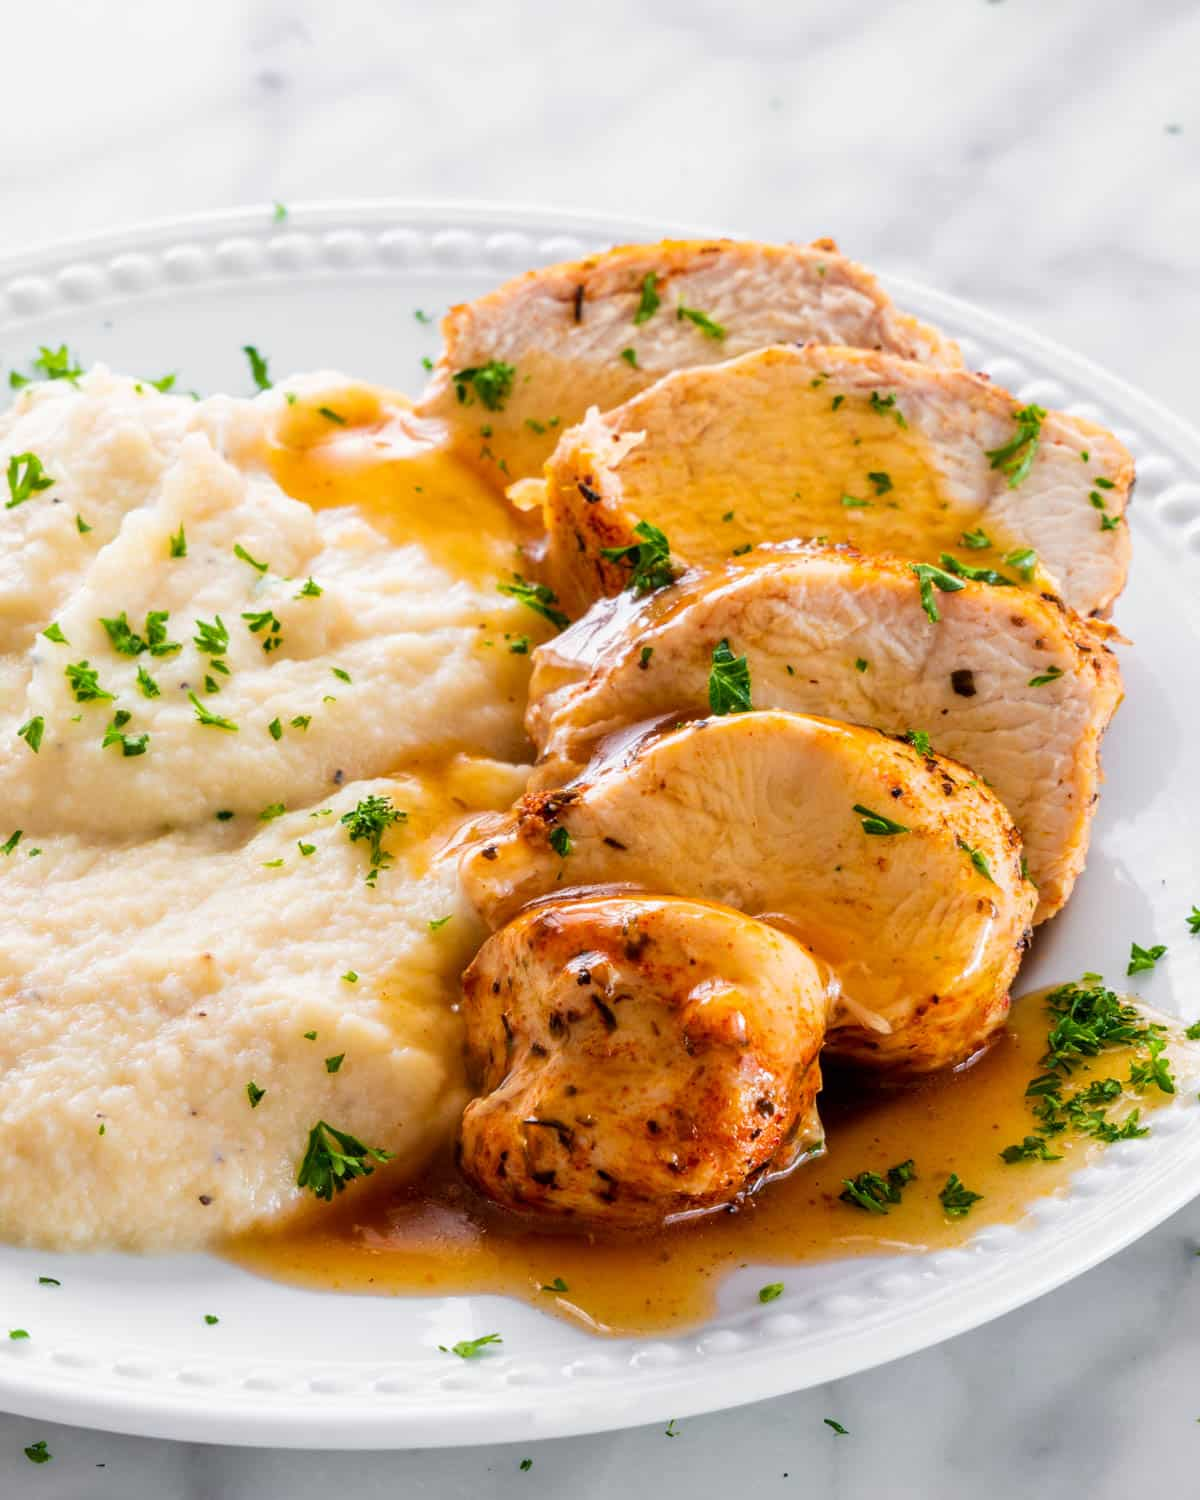 sliced chicken breast with gravy and mashed cauliflower on a white plate